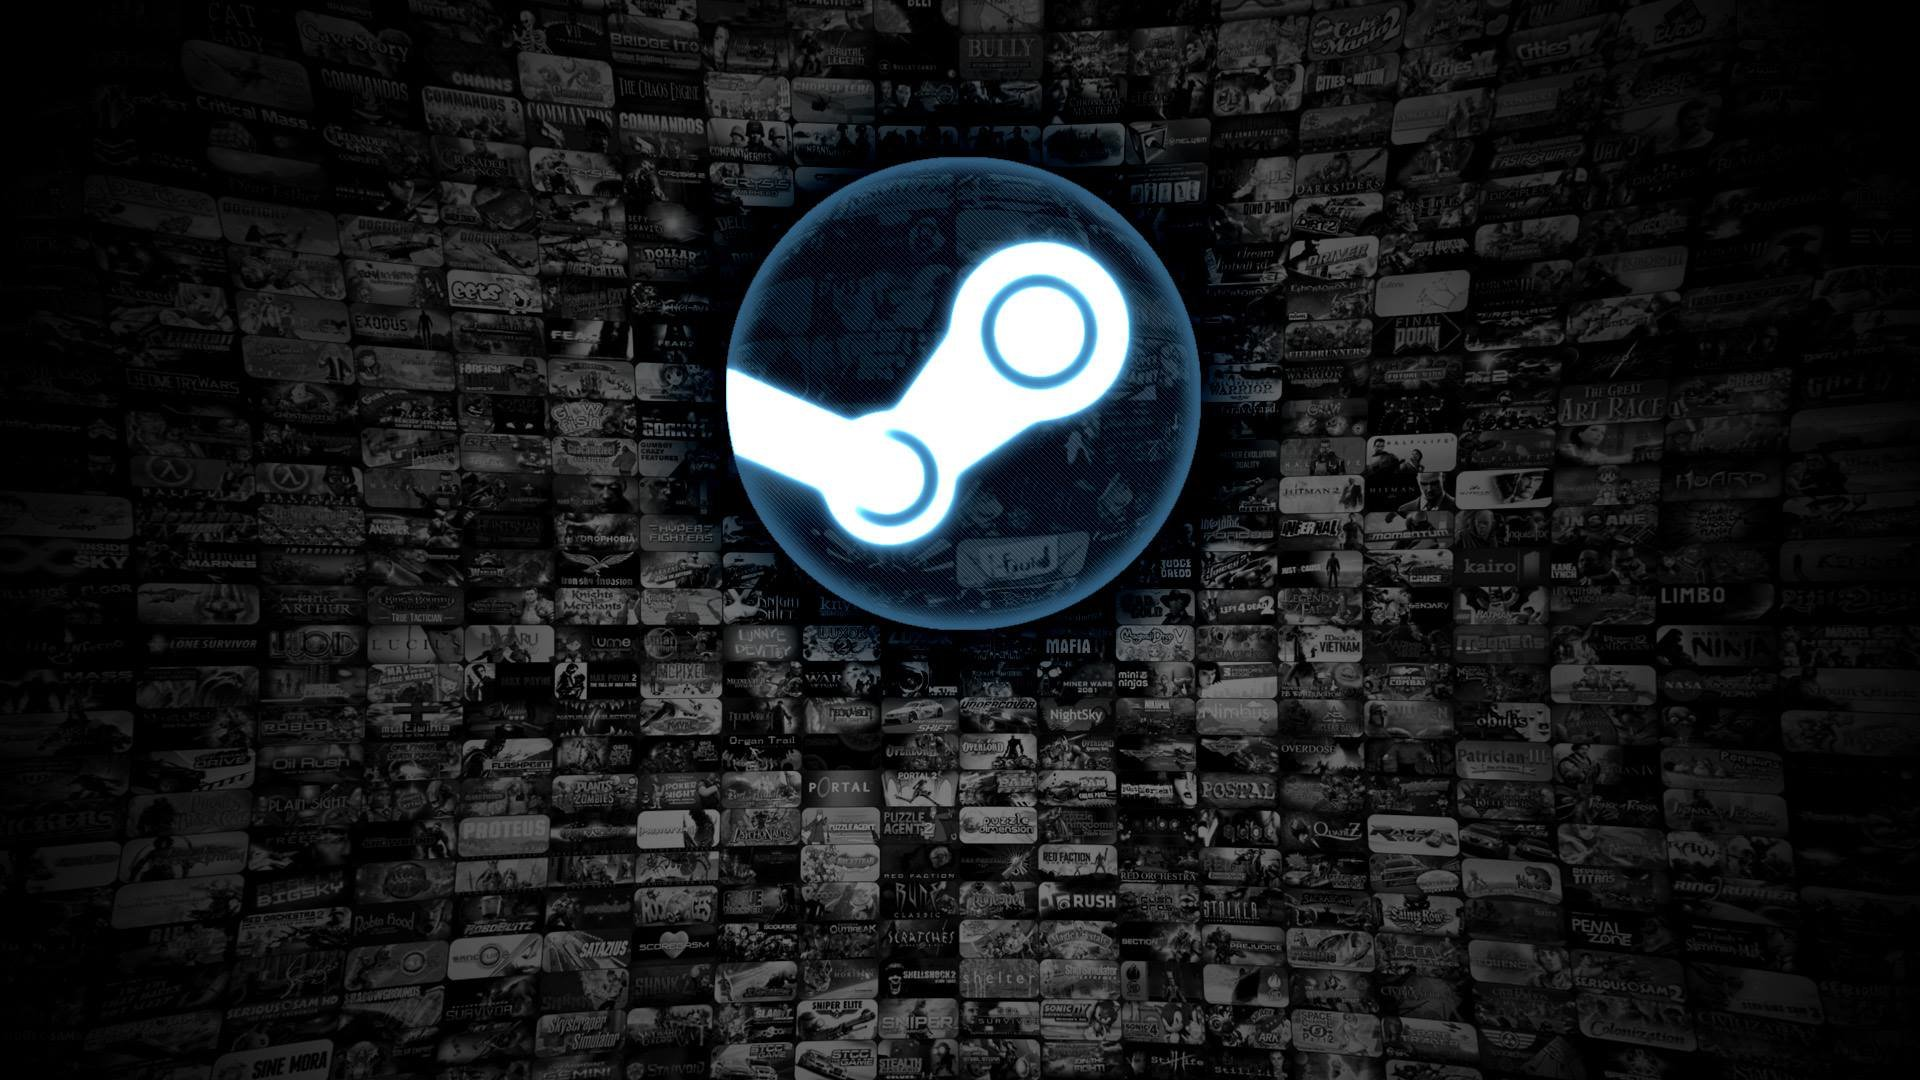 Steam Wallpapers Hd For Desktop Backgrounds